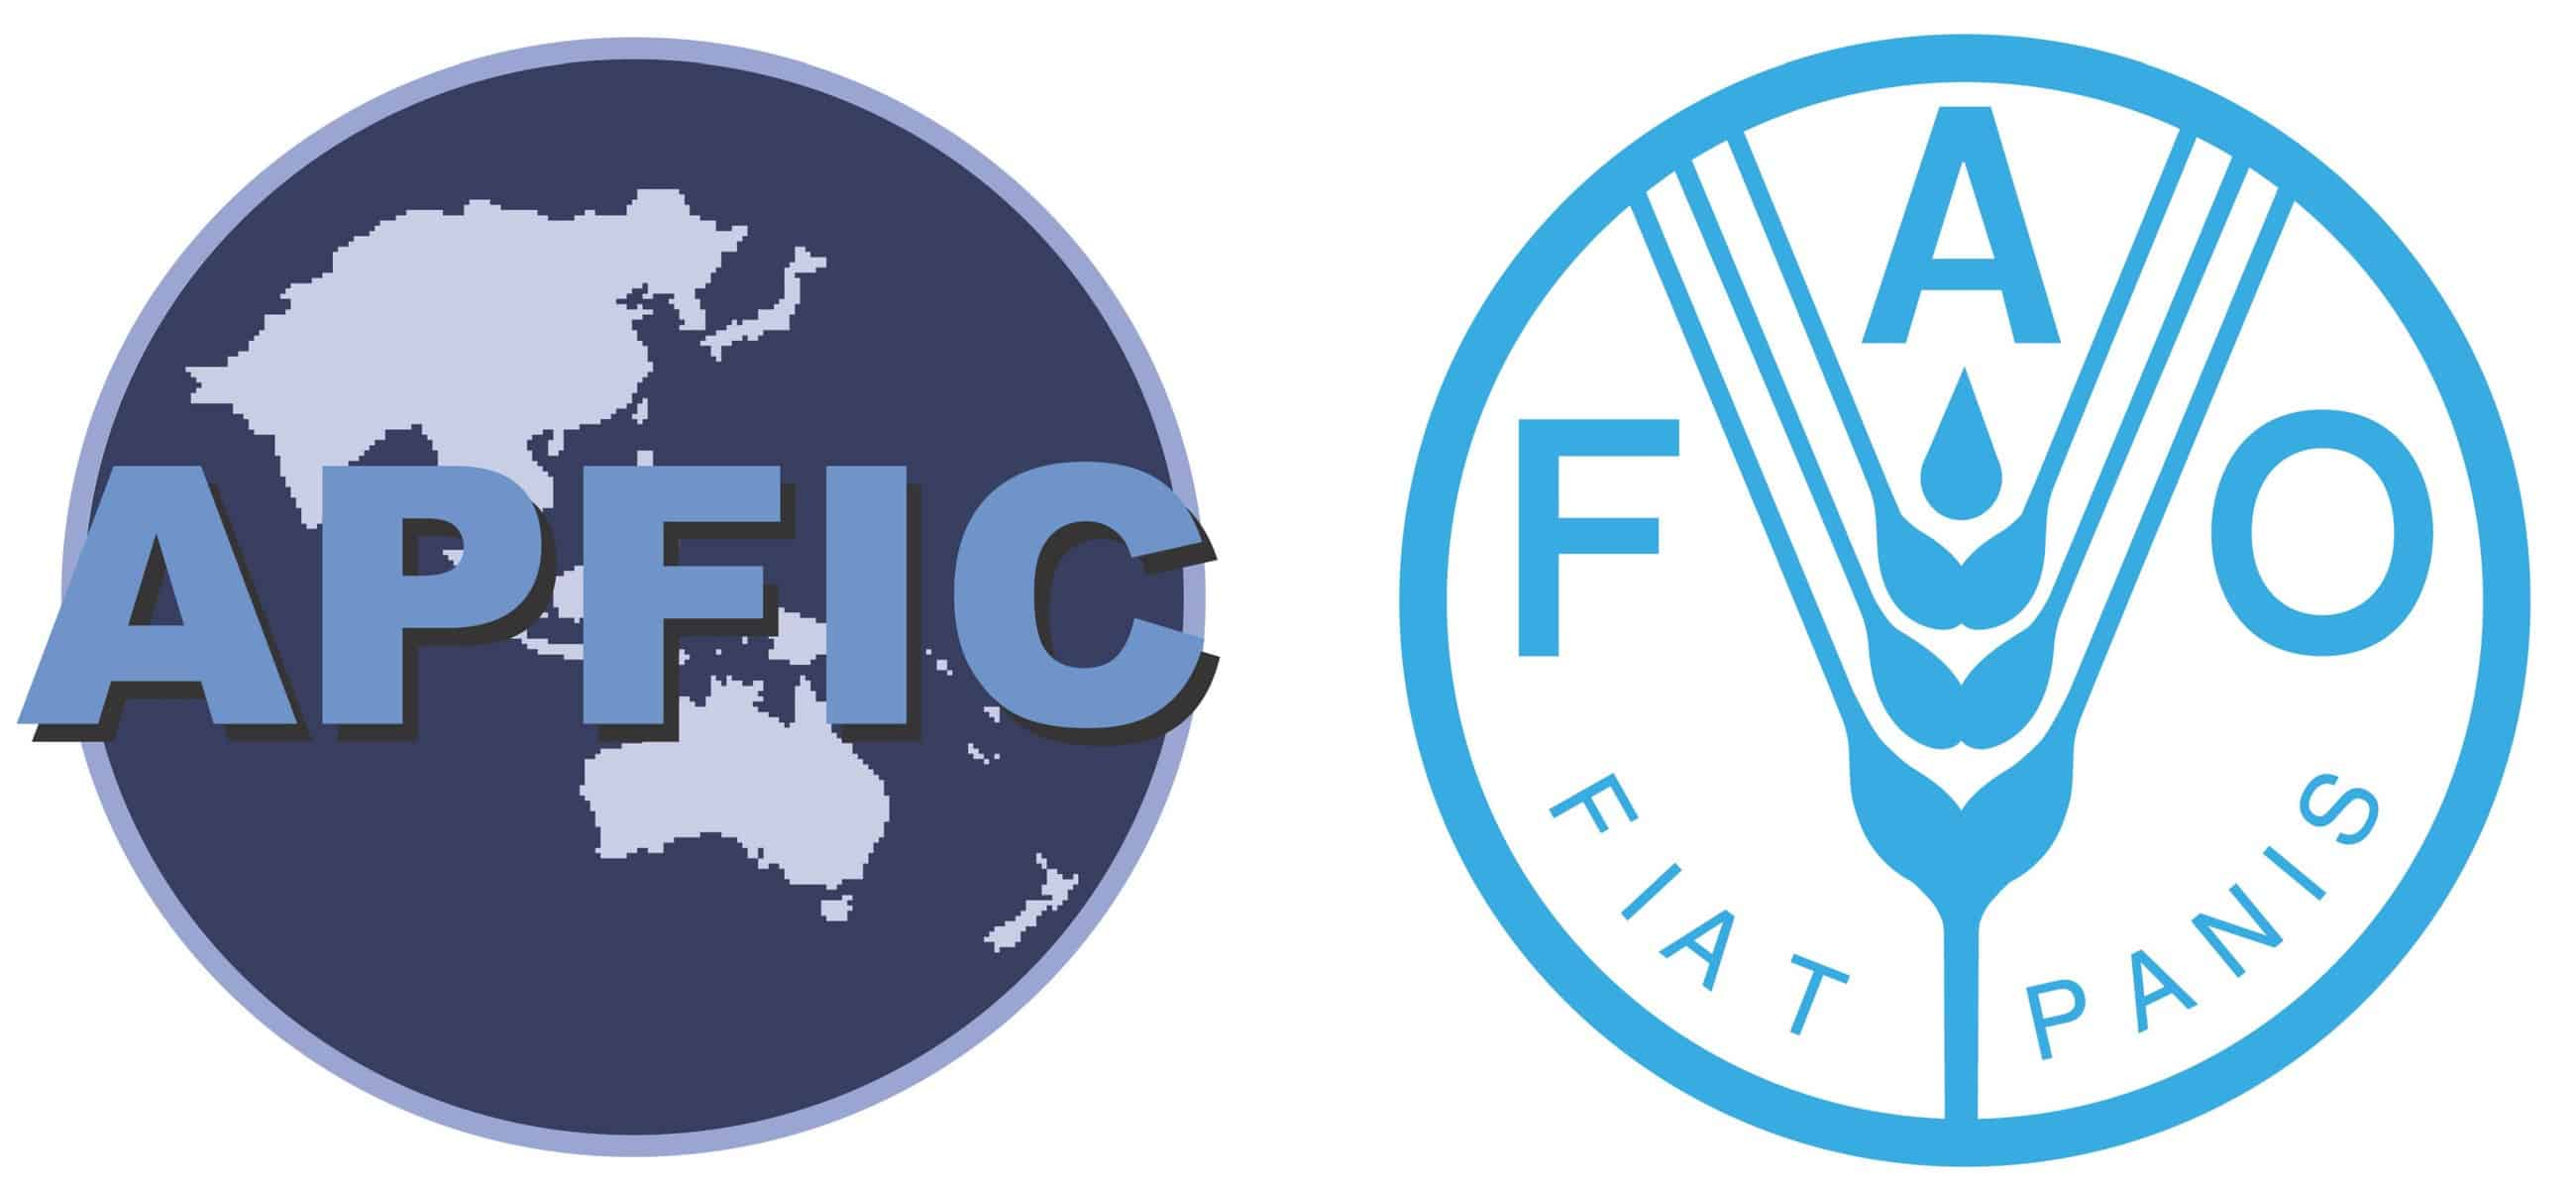 apfic asia pacific fishery commission logo